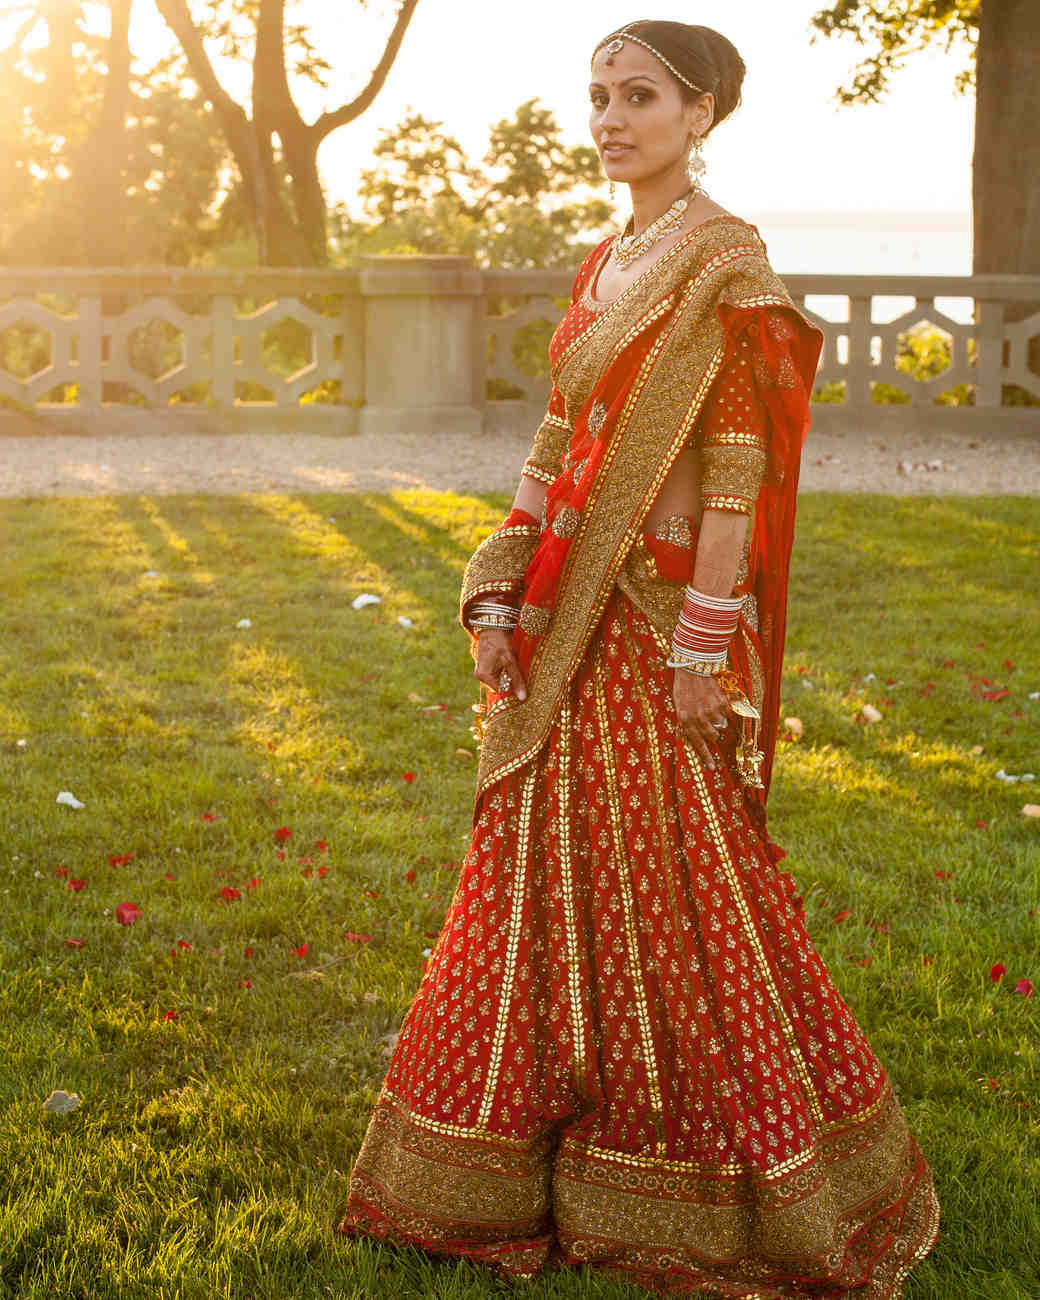 Top Red Wedding Attire With Indian Dress Up Games For Couples